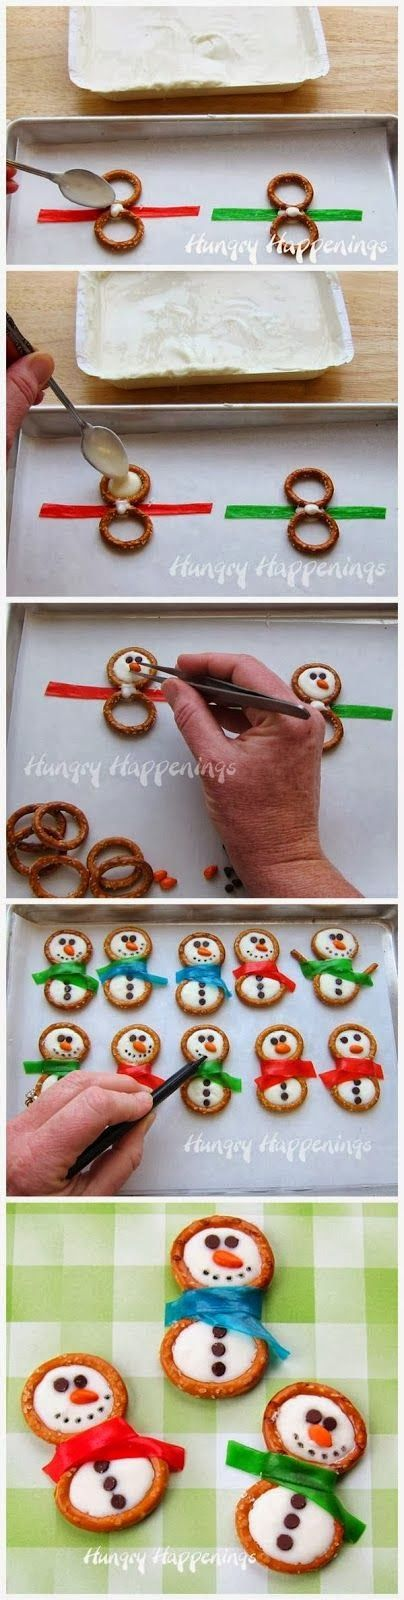 such a cute idea for christmas appetizer or dessert. pretzel with chocolate to look like a snowman. Easy DIY